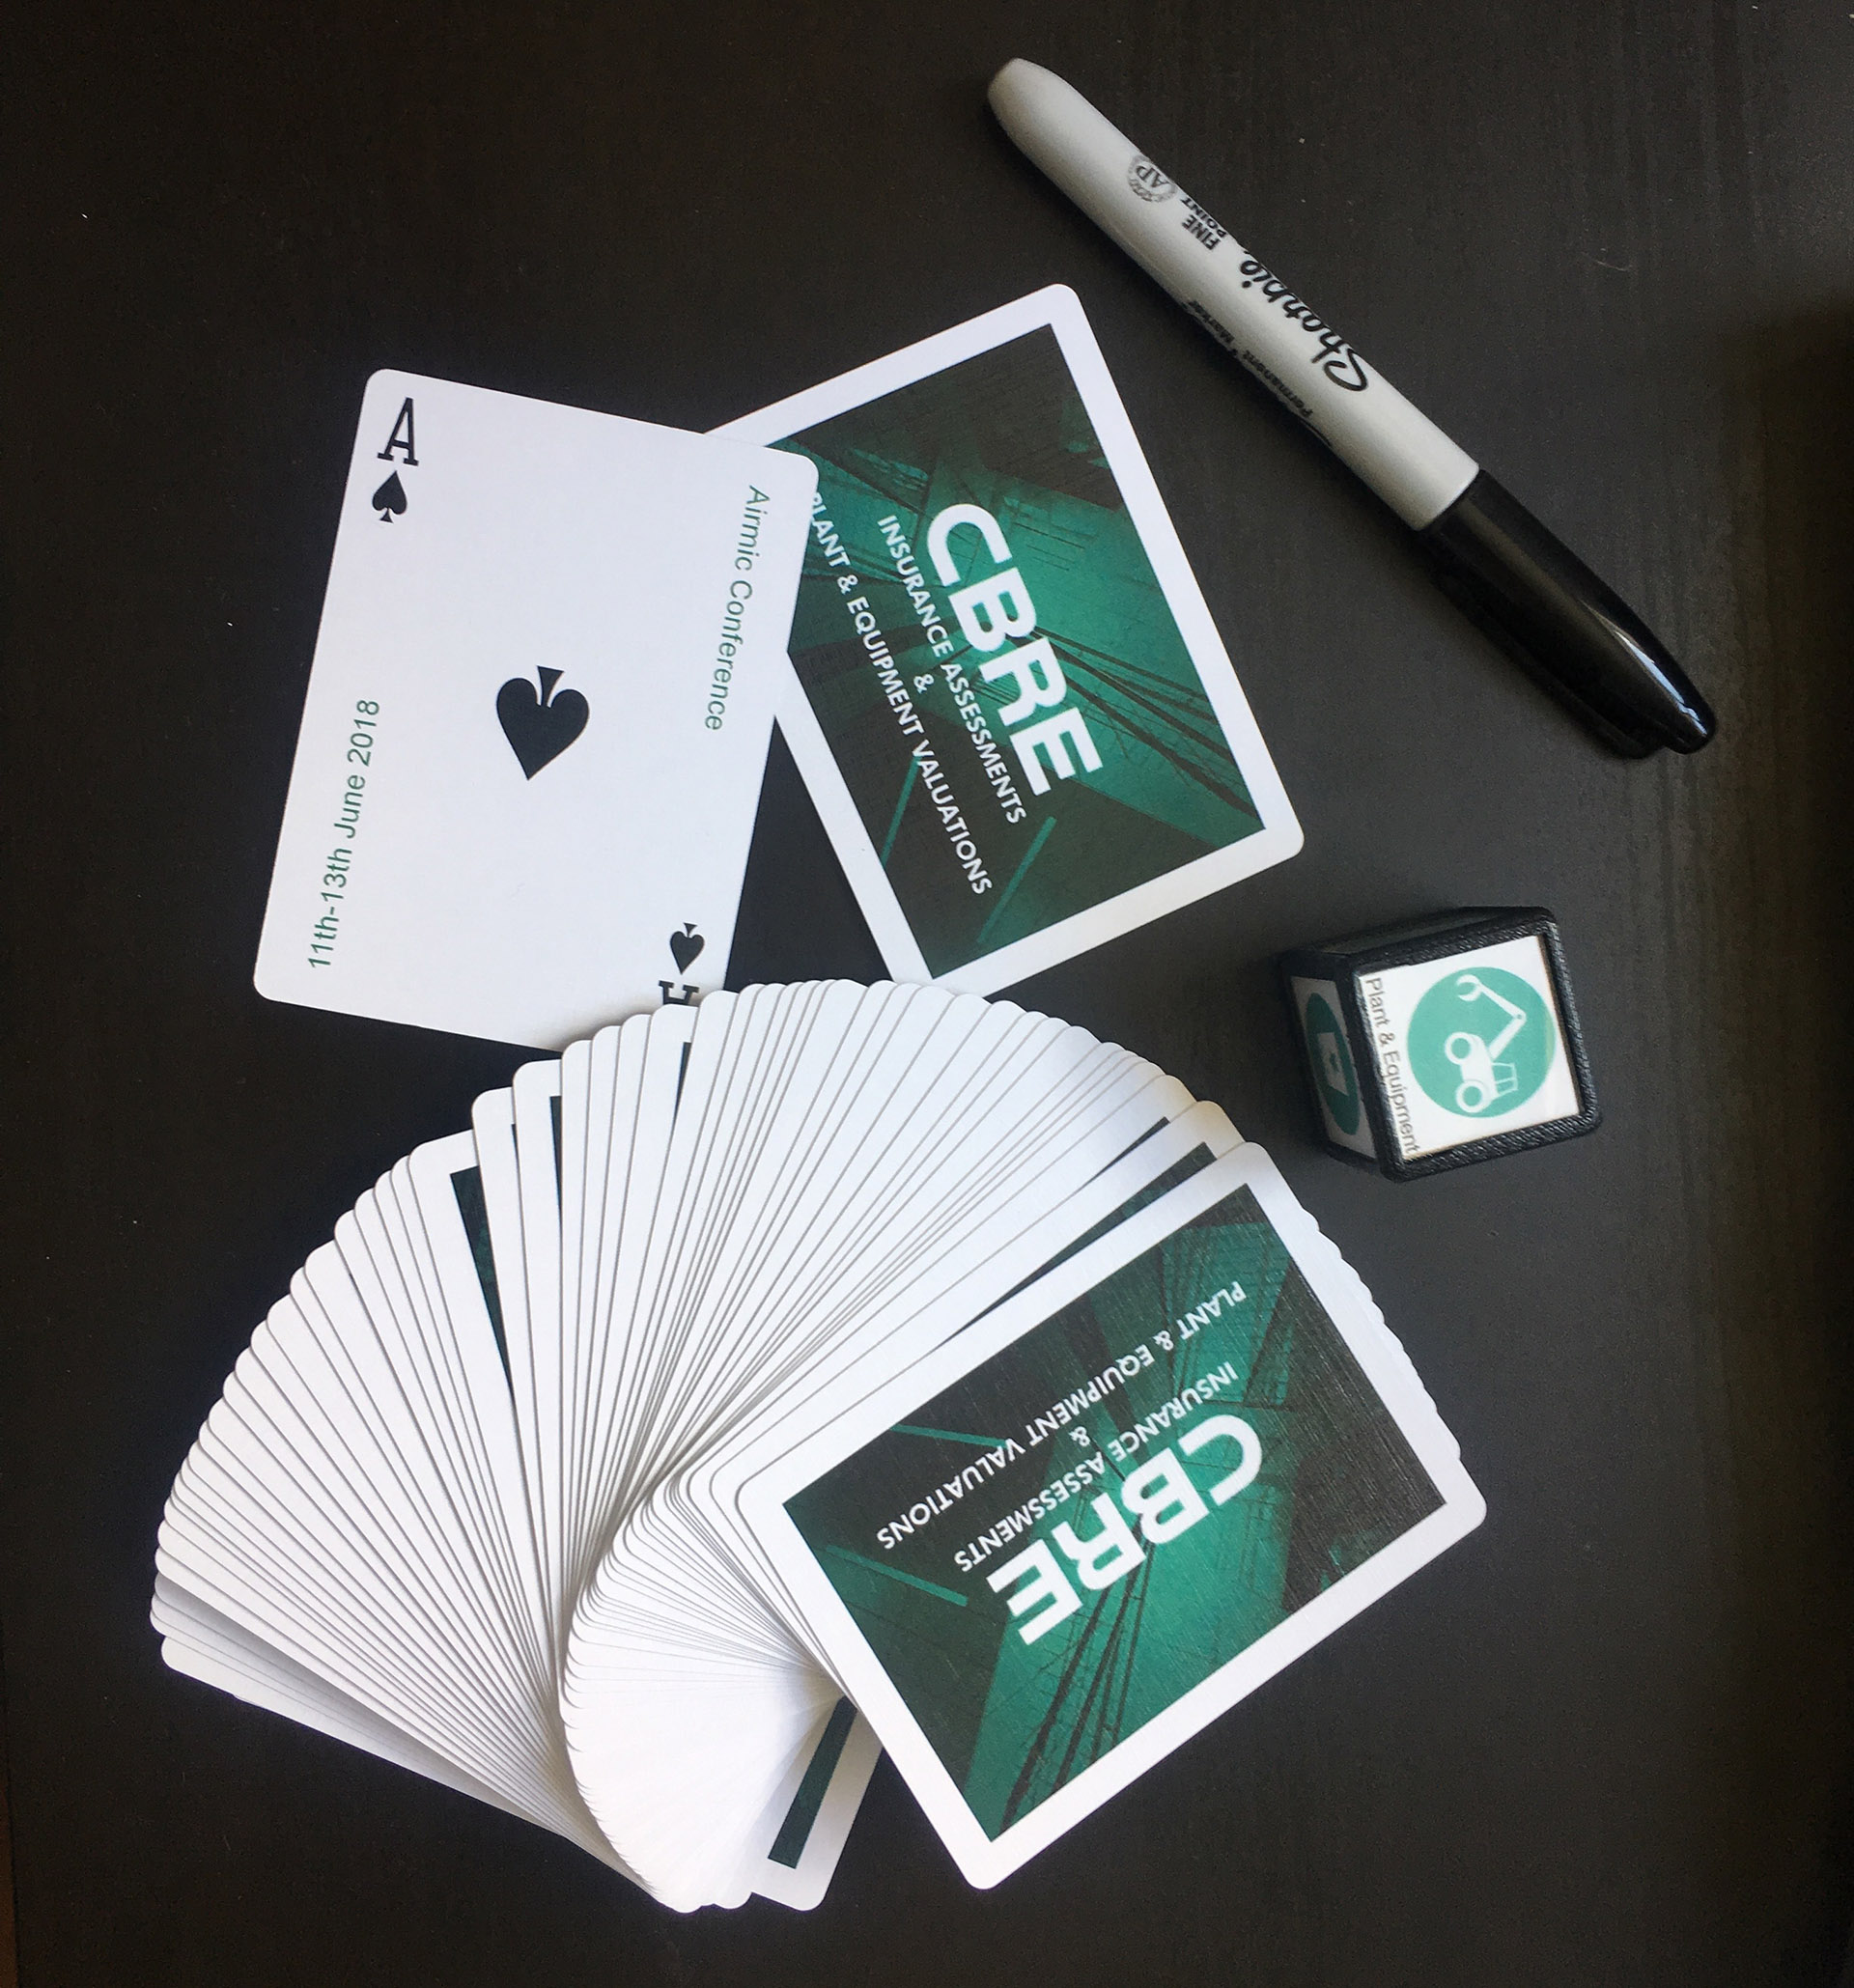 CBRE branded deck of cards